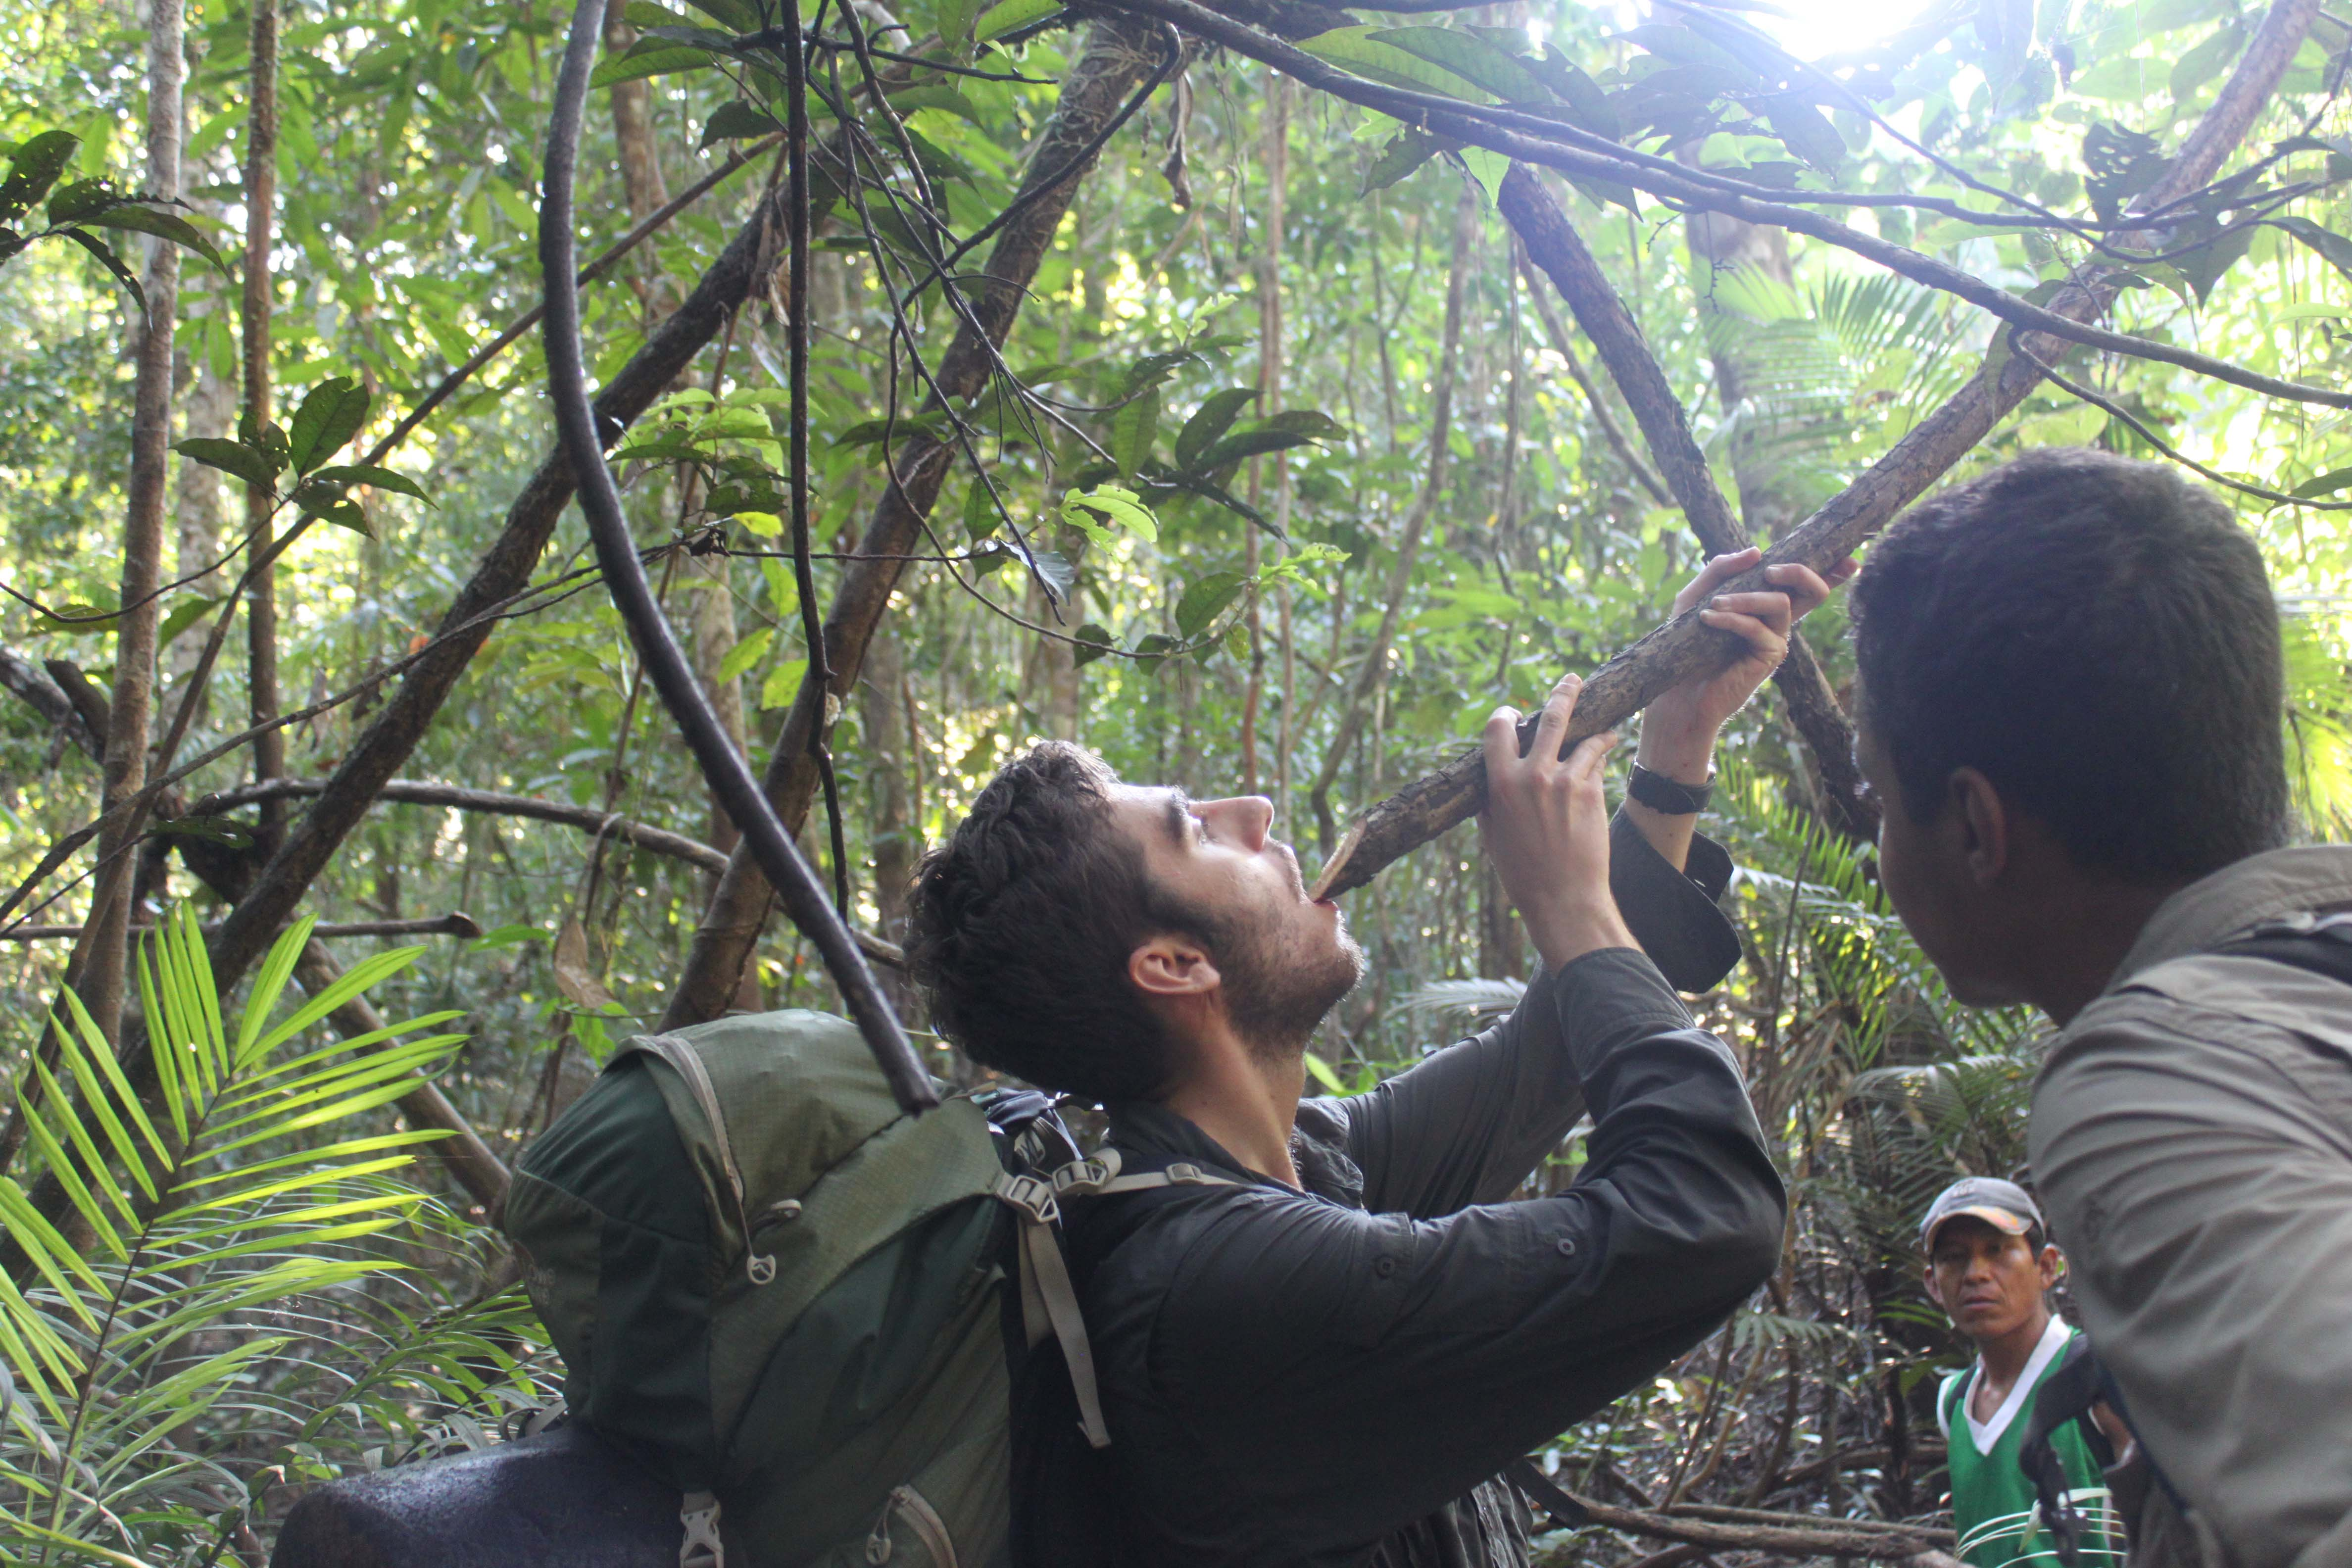 Drinking from a branch in the Amazon